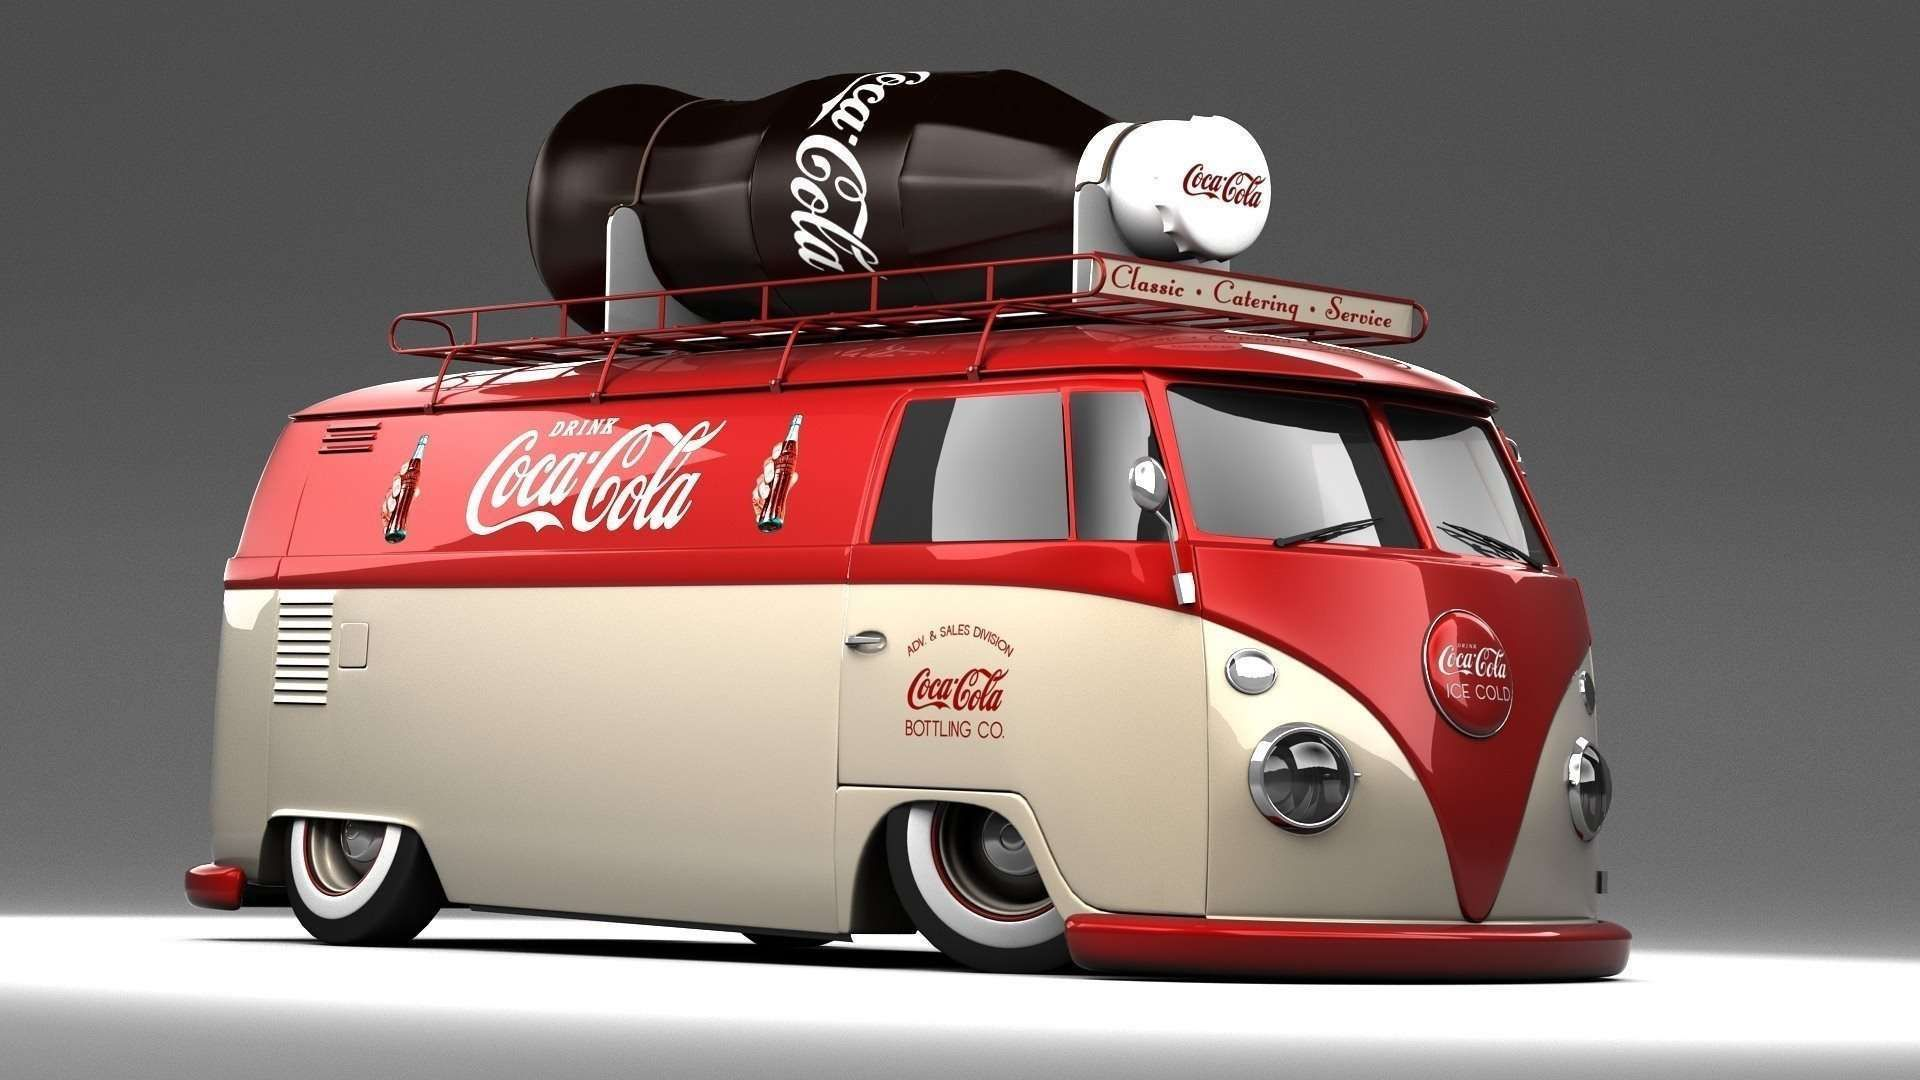 Coca Cola Wallpaper Hd 2014 Wallpapers11